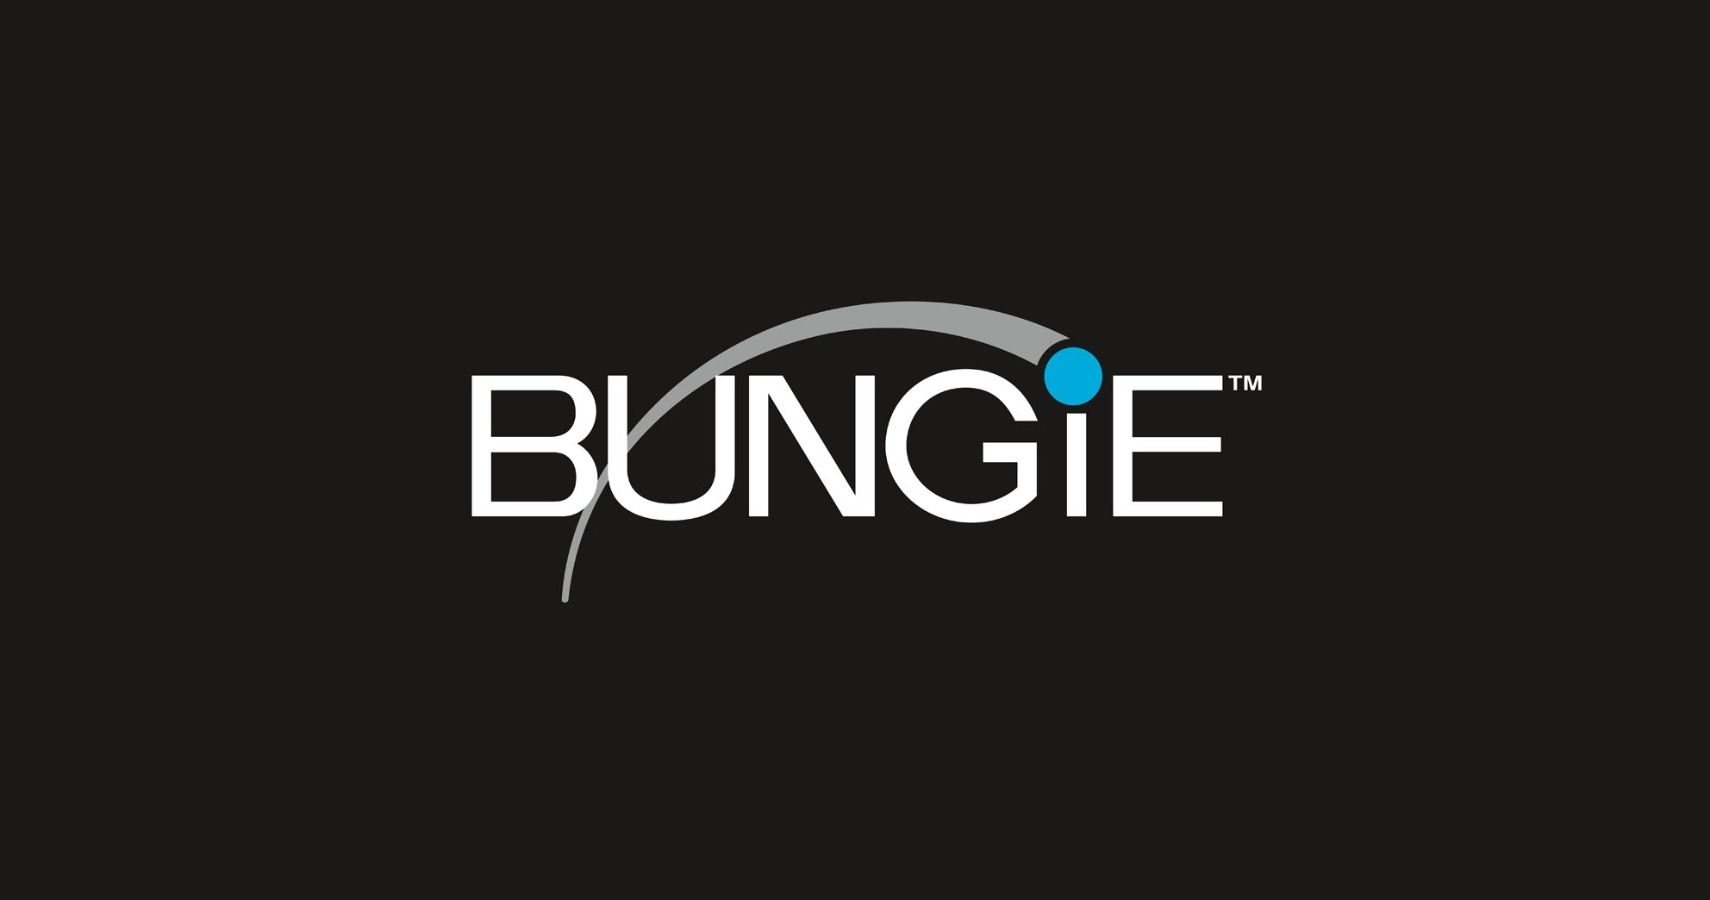 Microsoft Has Tried To Buy Bungie Several Times, But Bungie Was Too Expensive